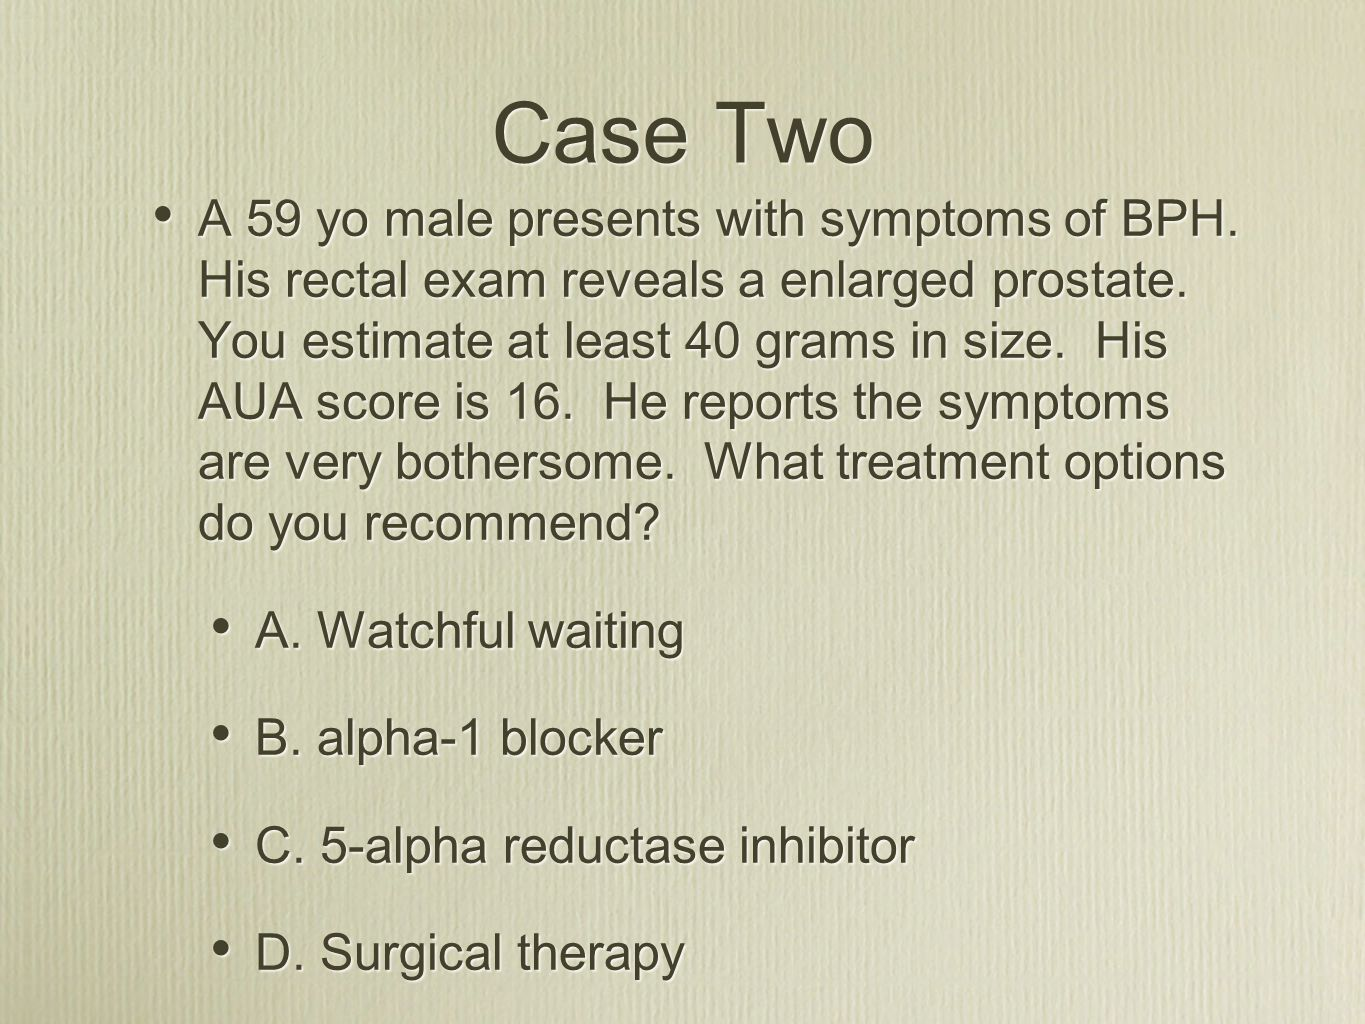 Case Two A 59 yo male presents with symptoms of BPH. His rectal exam reveals a enlarged prostate. You estimate at least 40 grams in size. His AUA scor